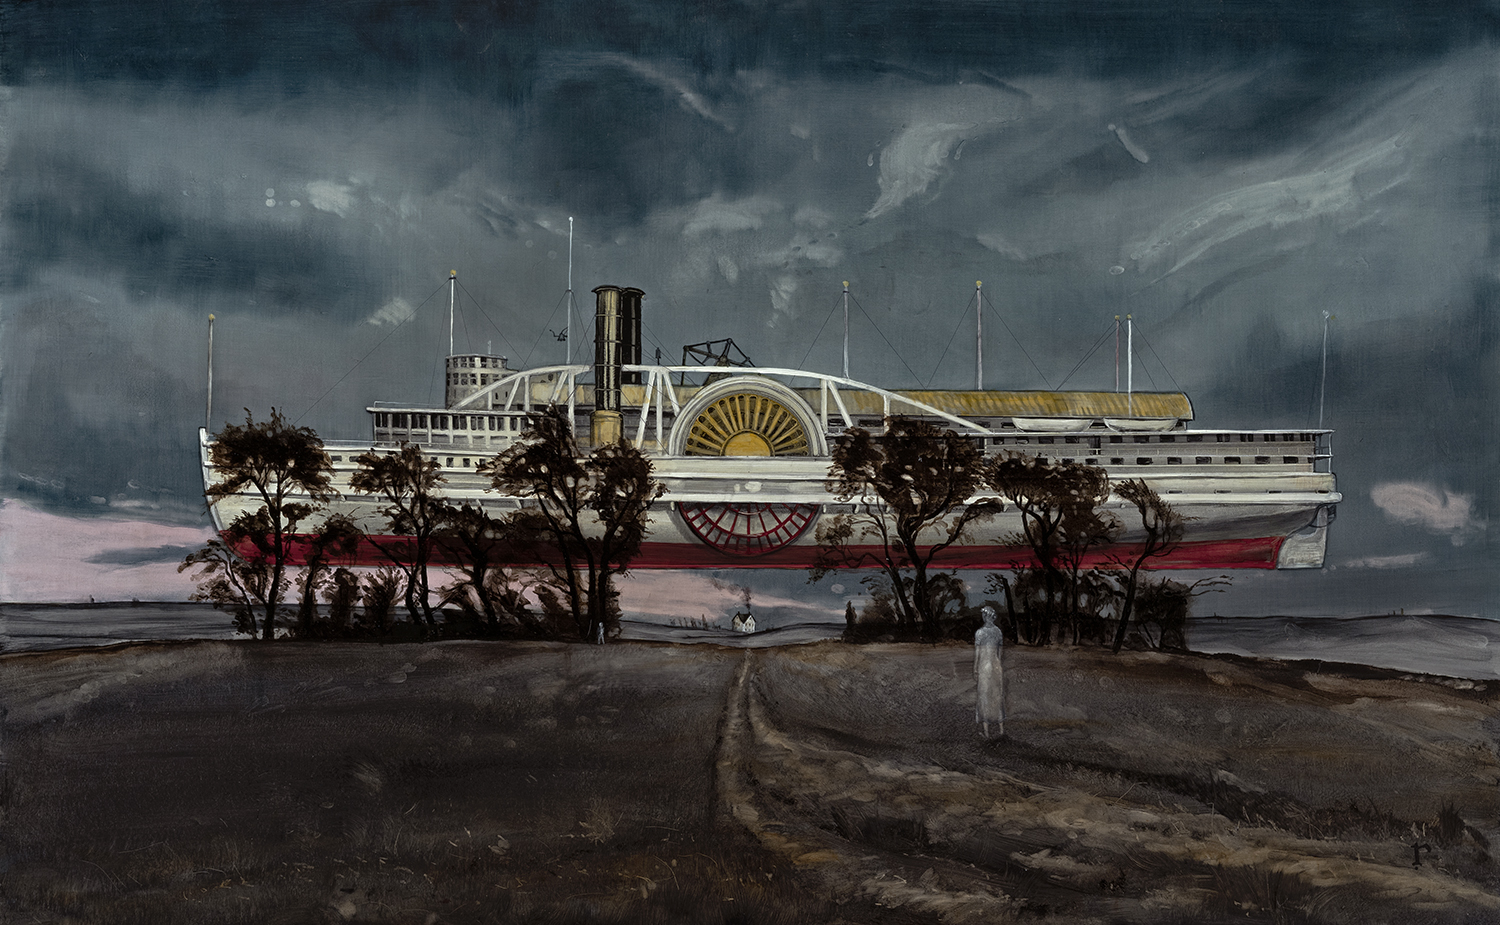 """The Fabulous Riverboat"" by Rye Tippett, oil on panel, 30x48, courtesy Morpeth Contemporary"